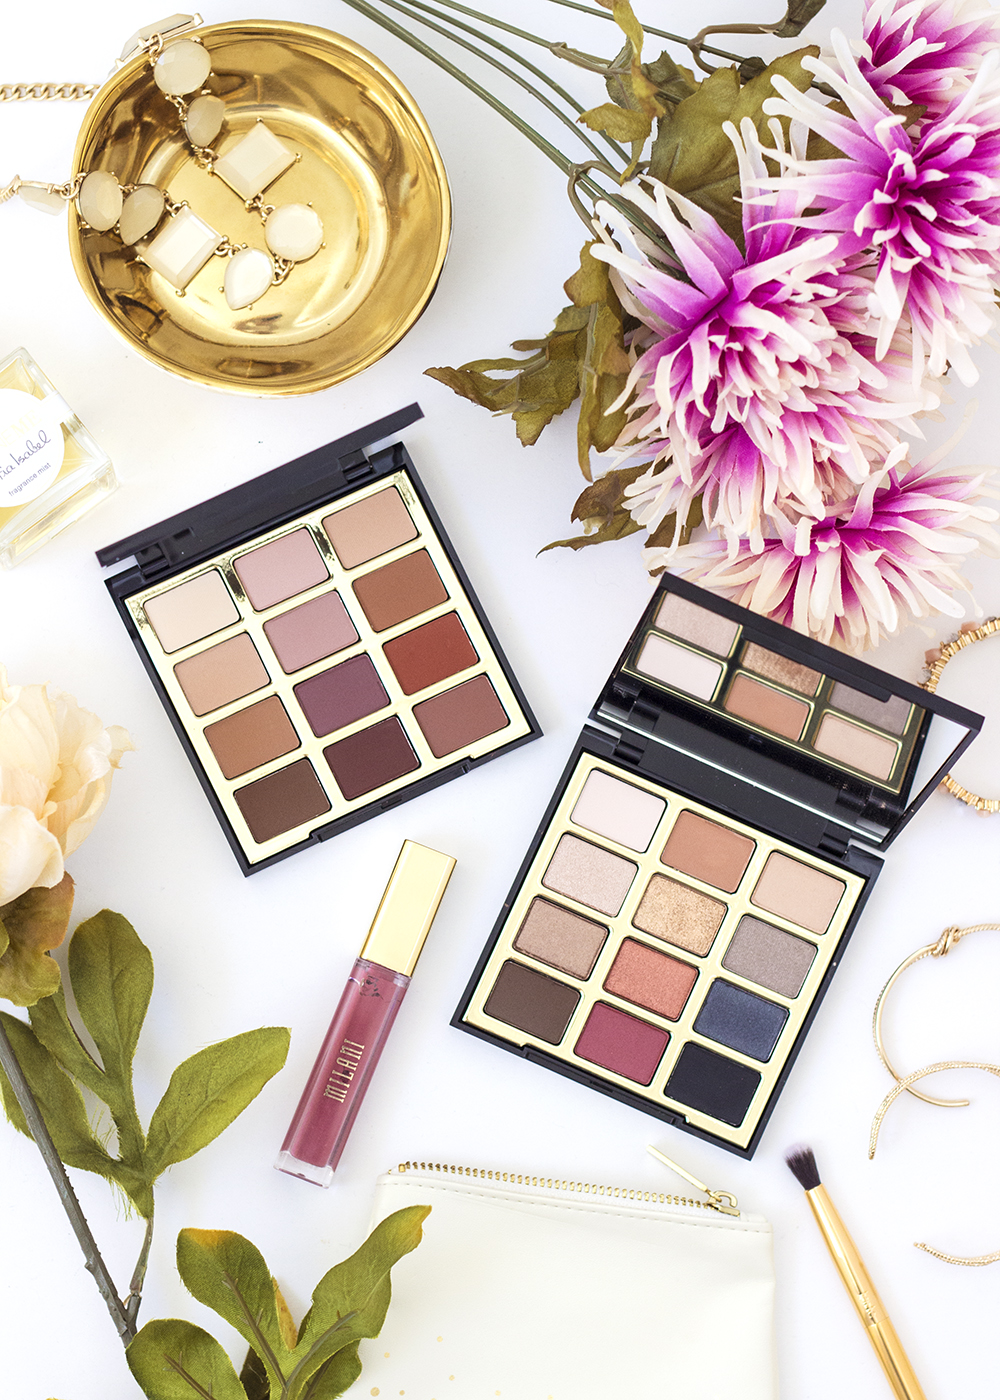 Milani Most Loved Mattes & Bold Obsessions Palettes